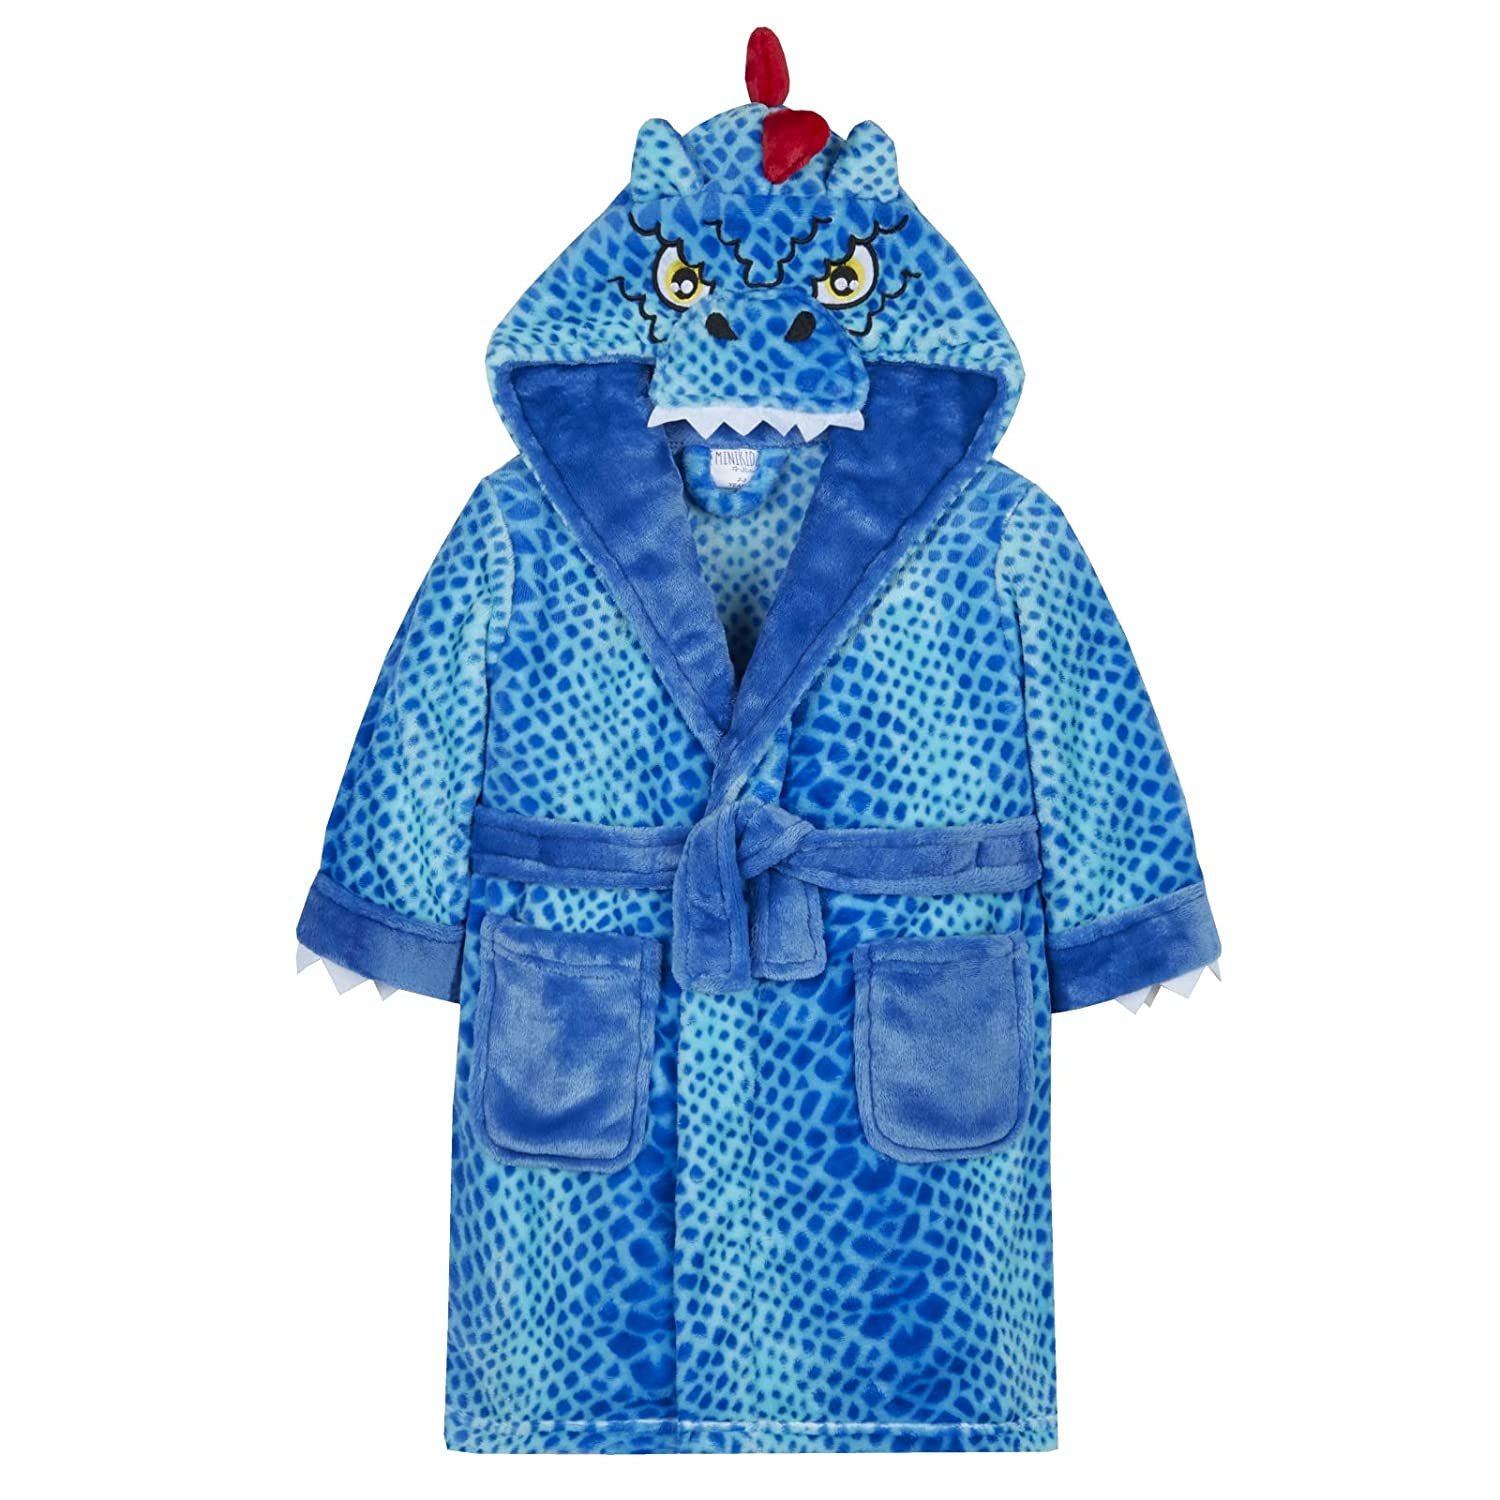 Strong Souls Boys Novelty Hooded Dino Dragon Dressing Gown MNCK2288